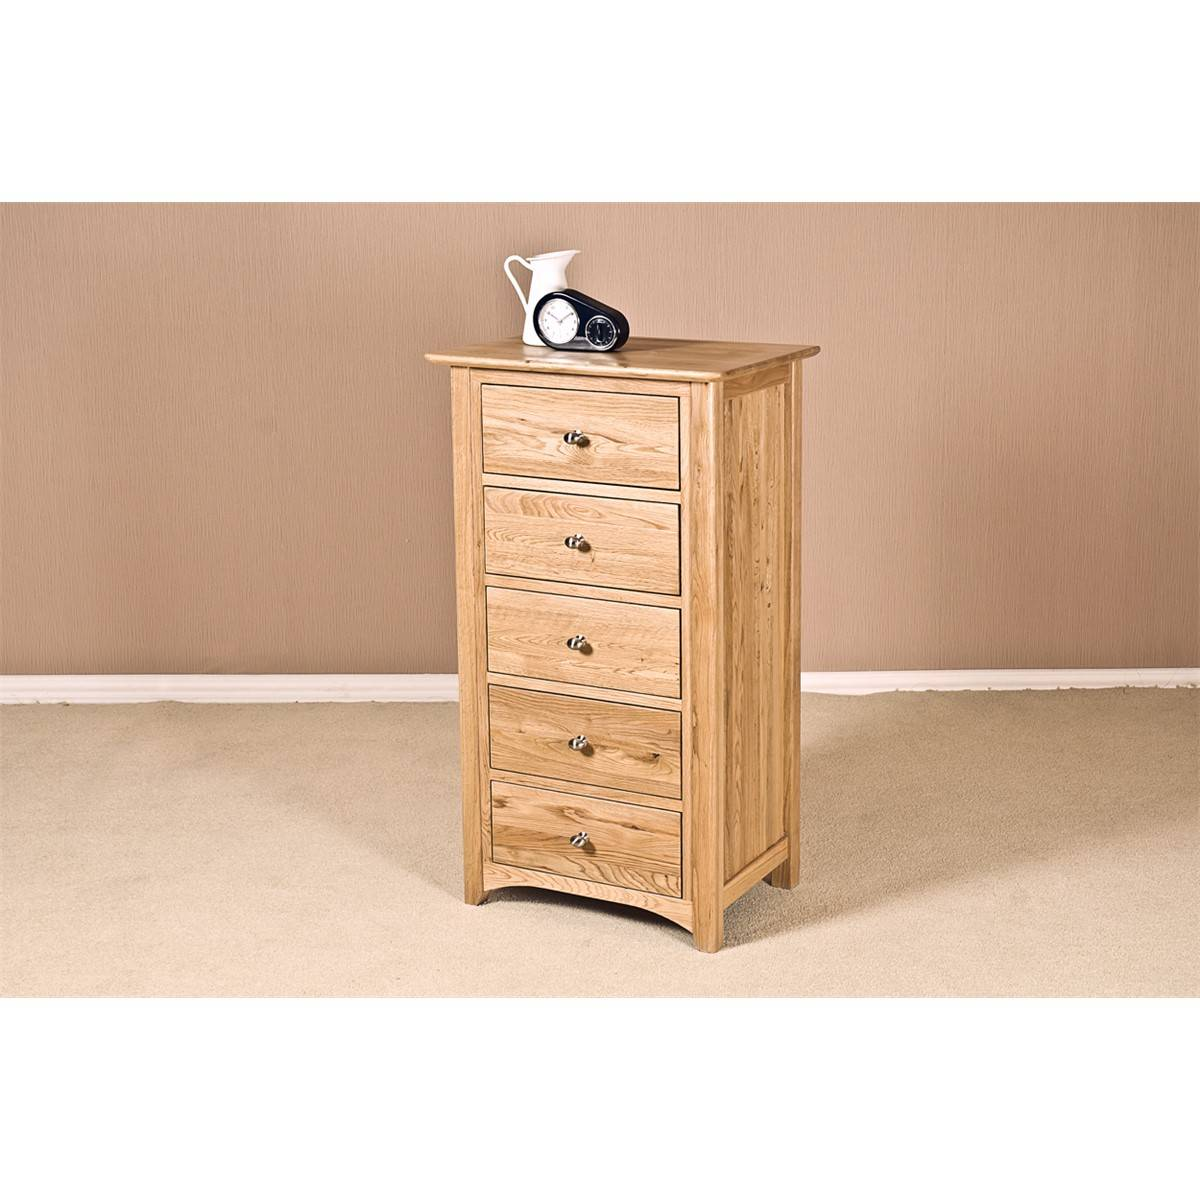 Our furniture carvalho 5 drawer wellington chest bedroom for Bedroom furniture wellington